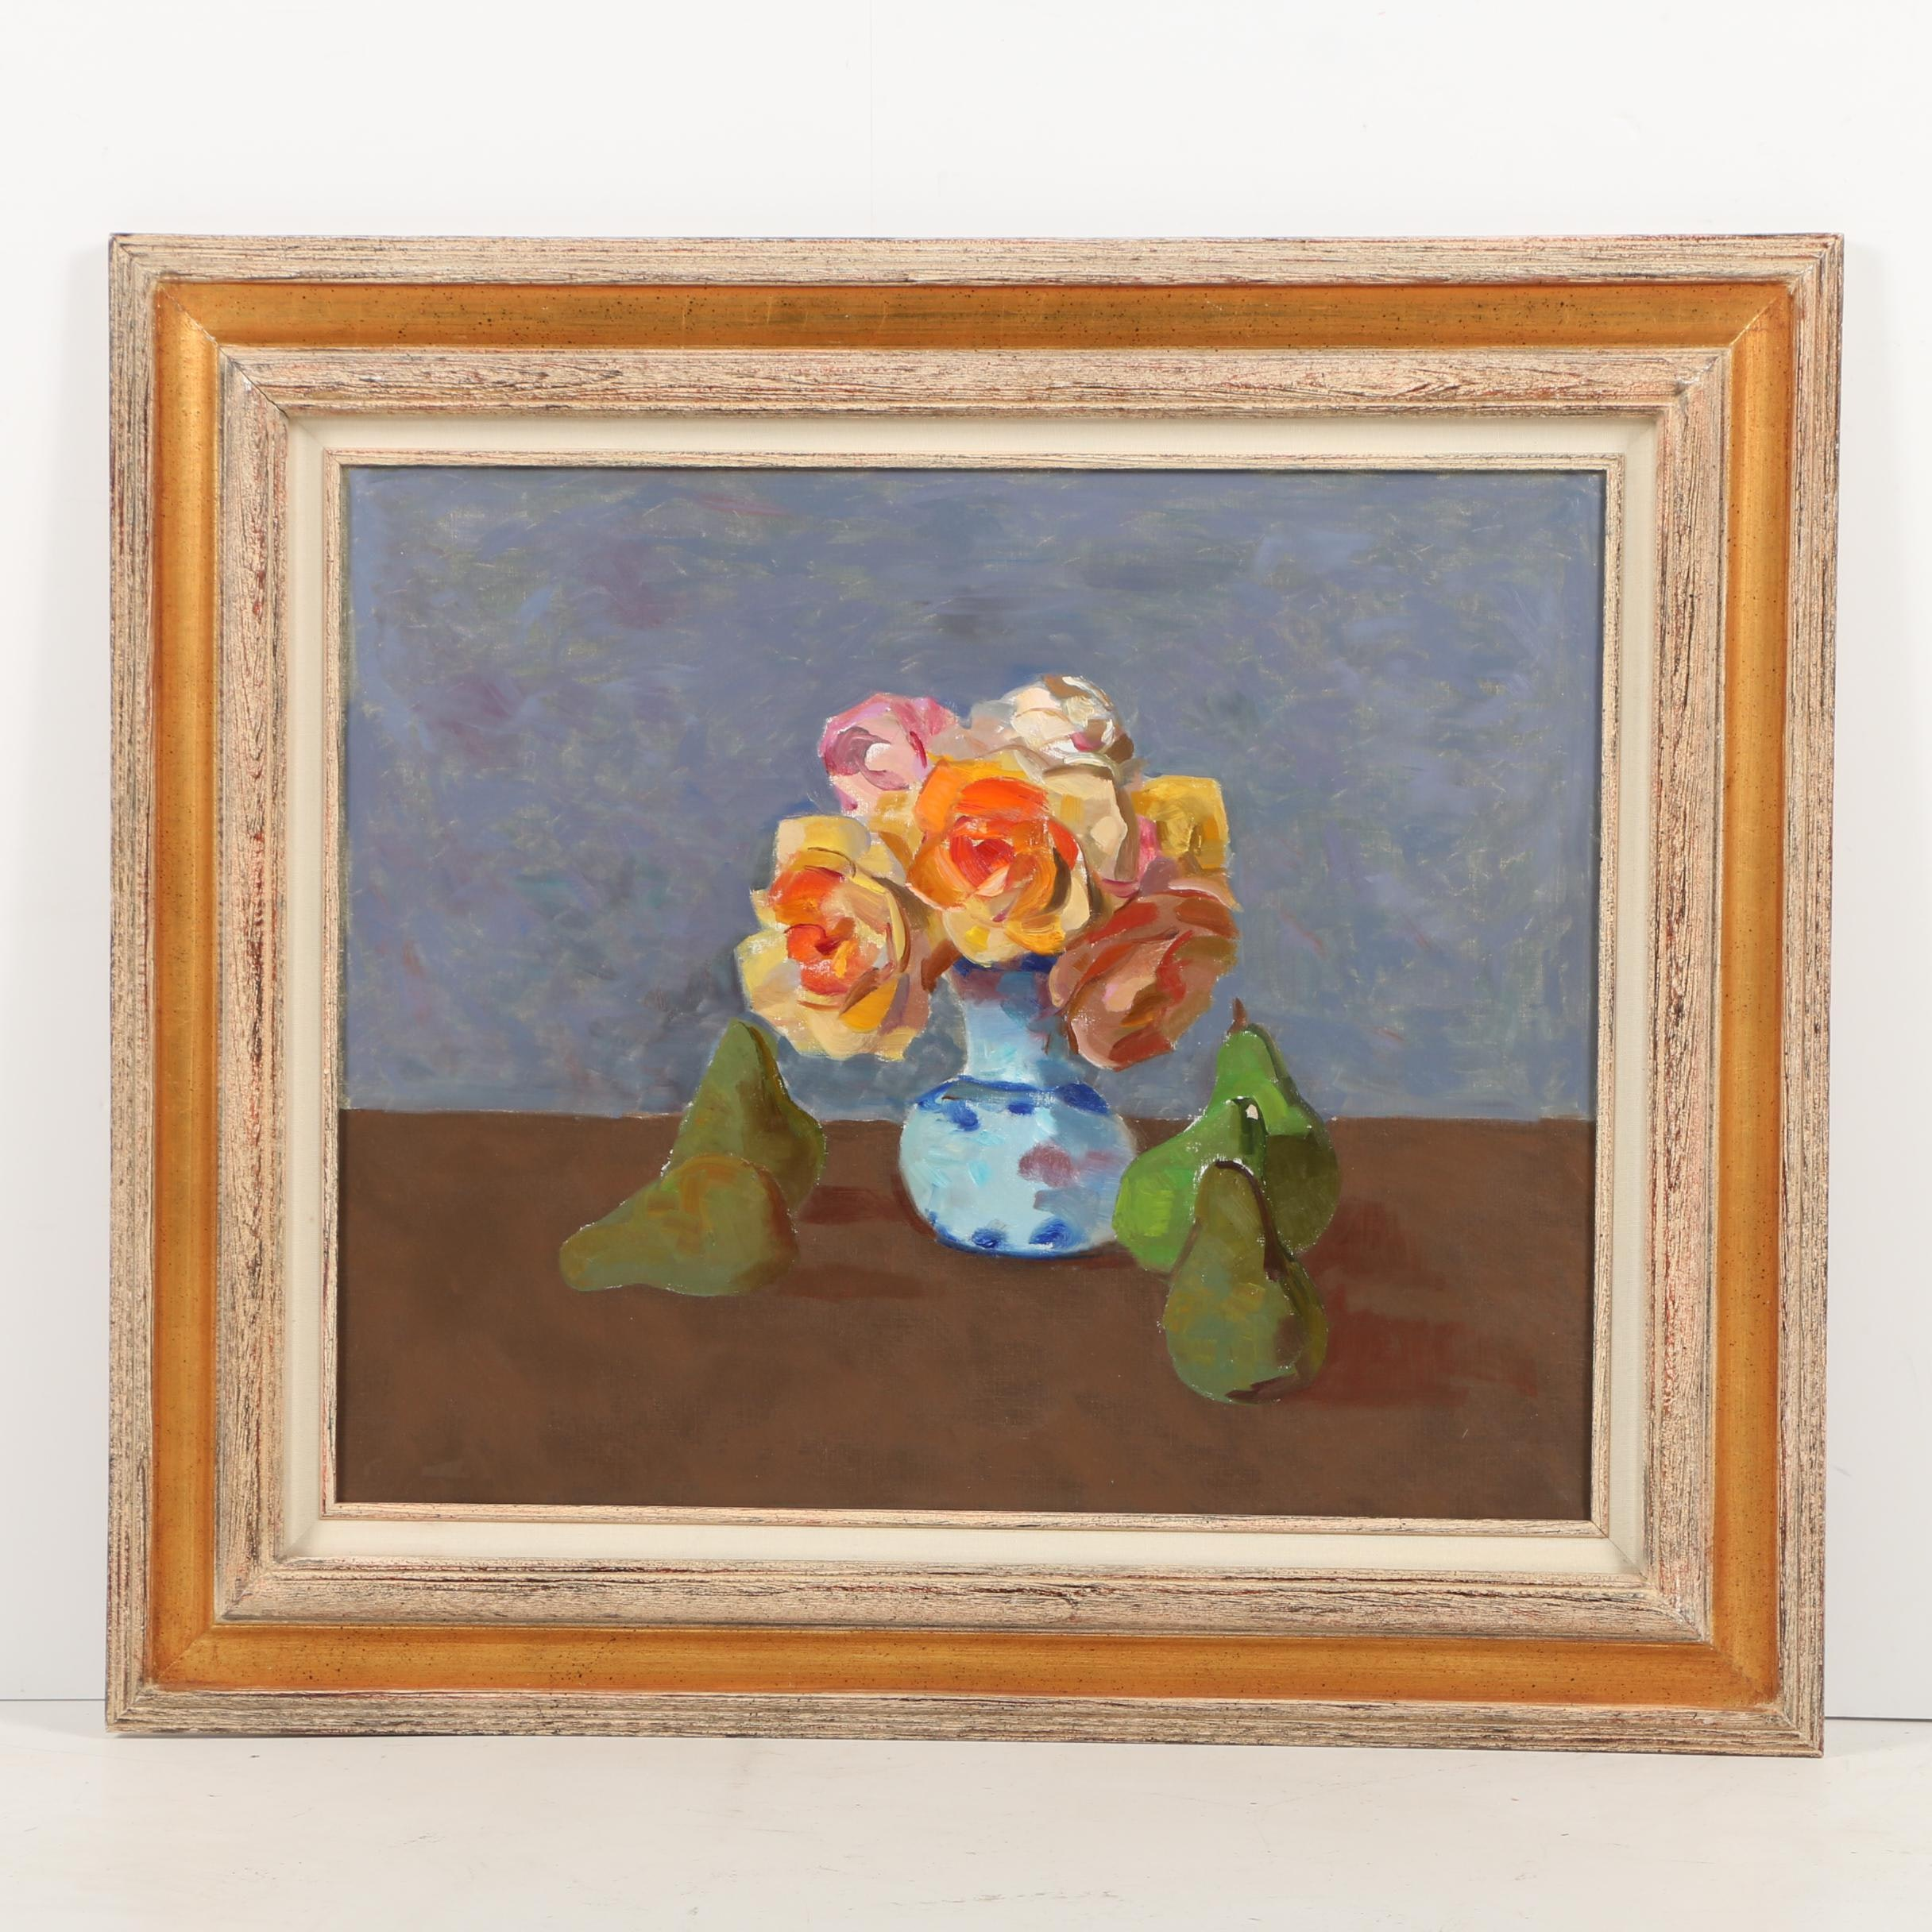 Oil Painting on Canvas of a Floral Still Life